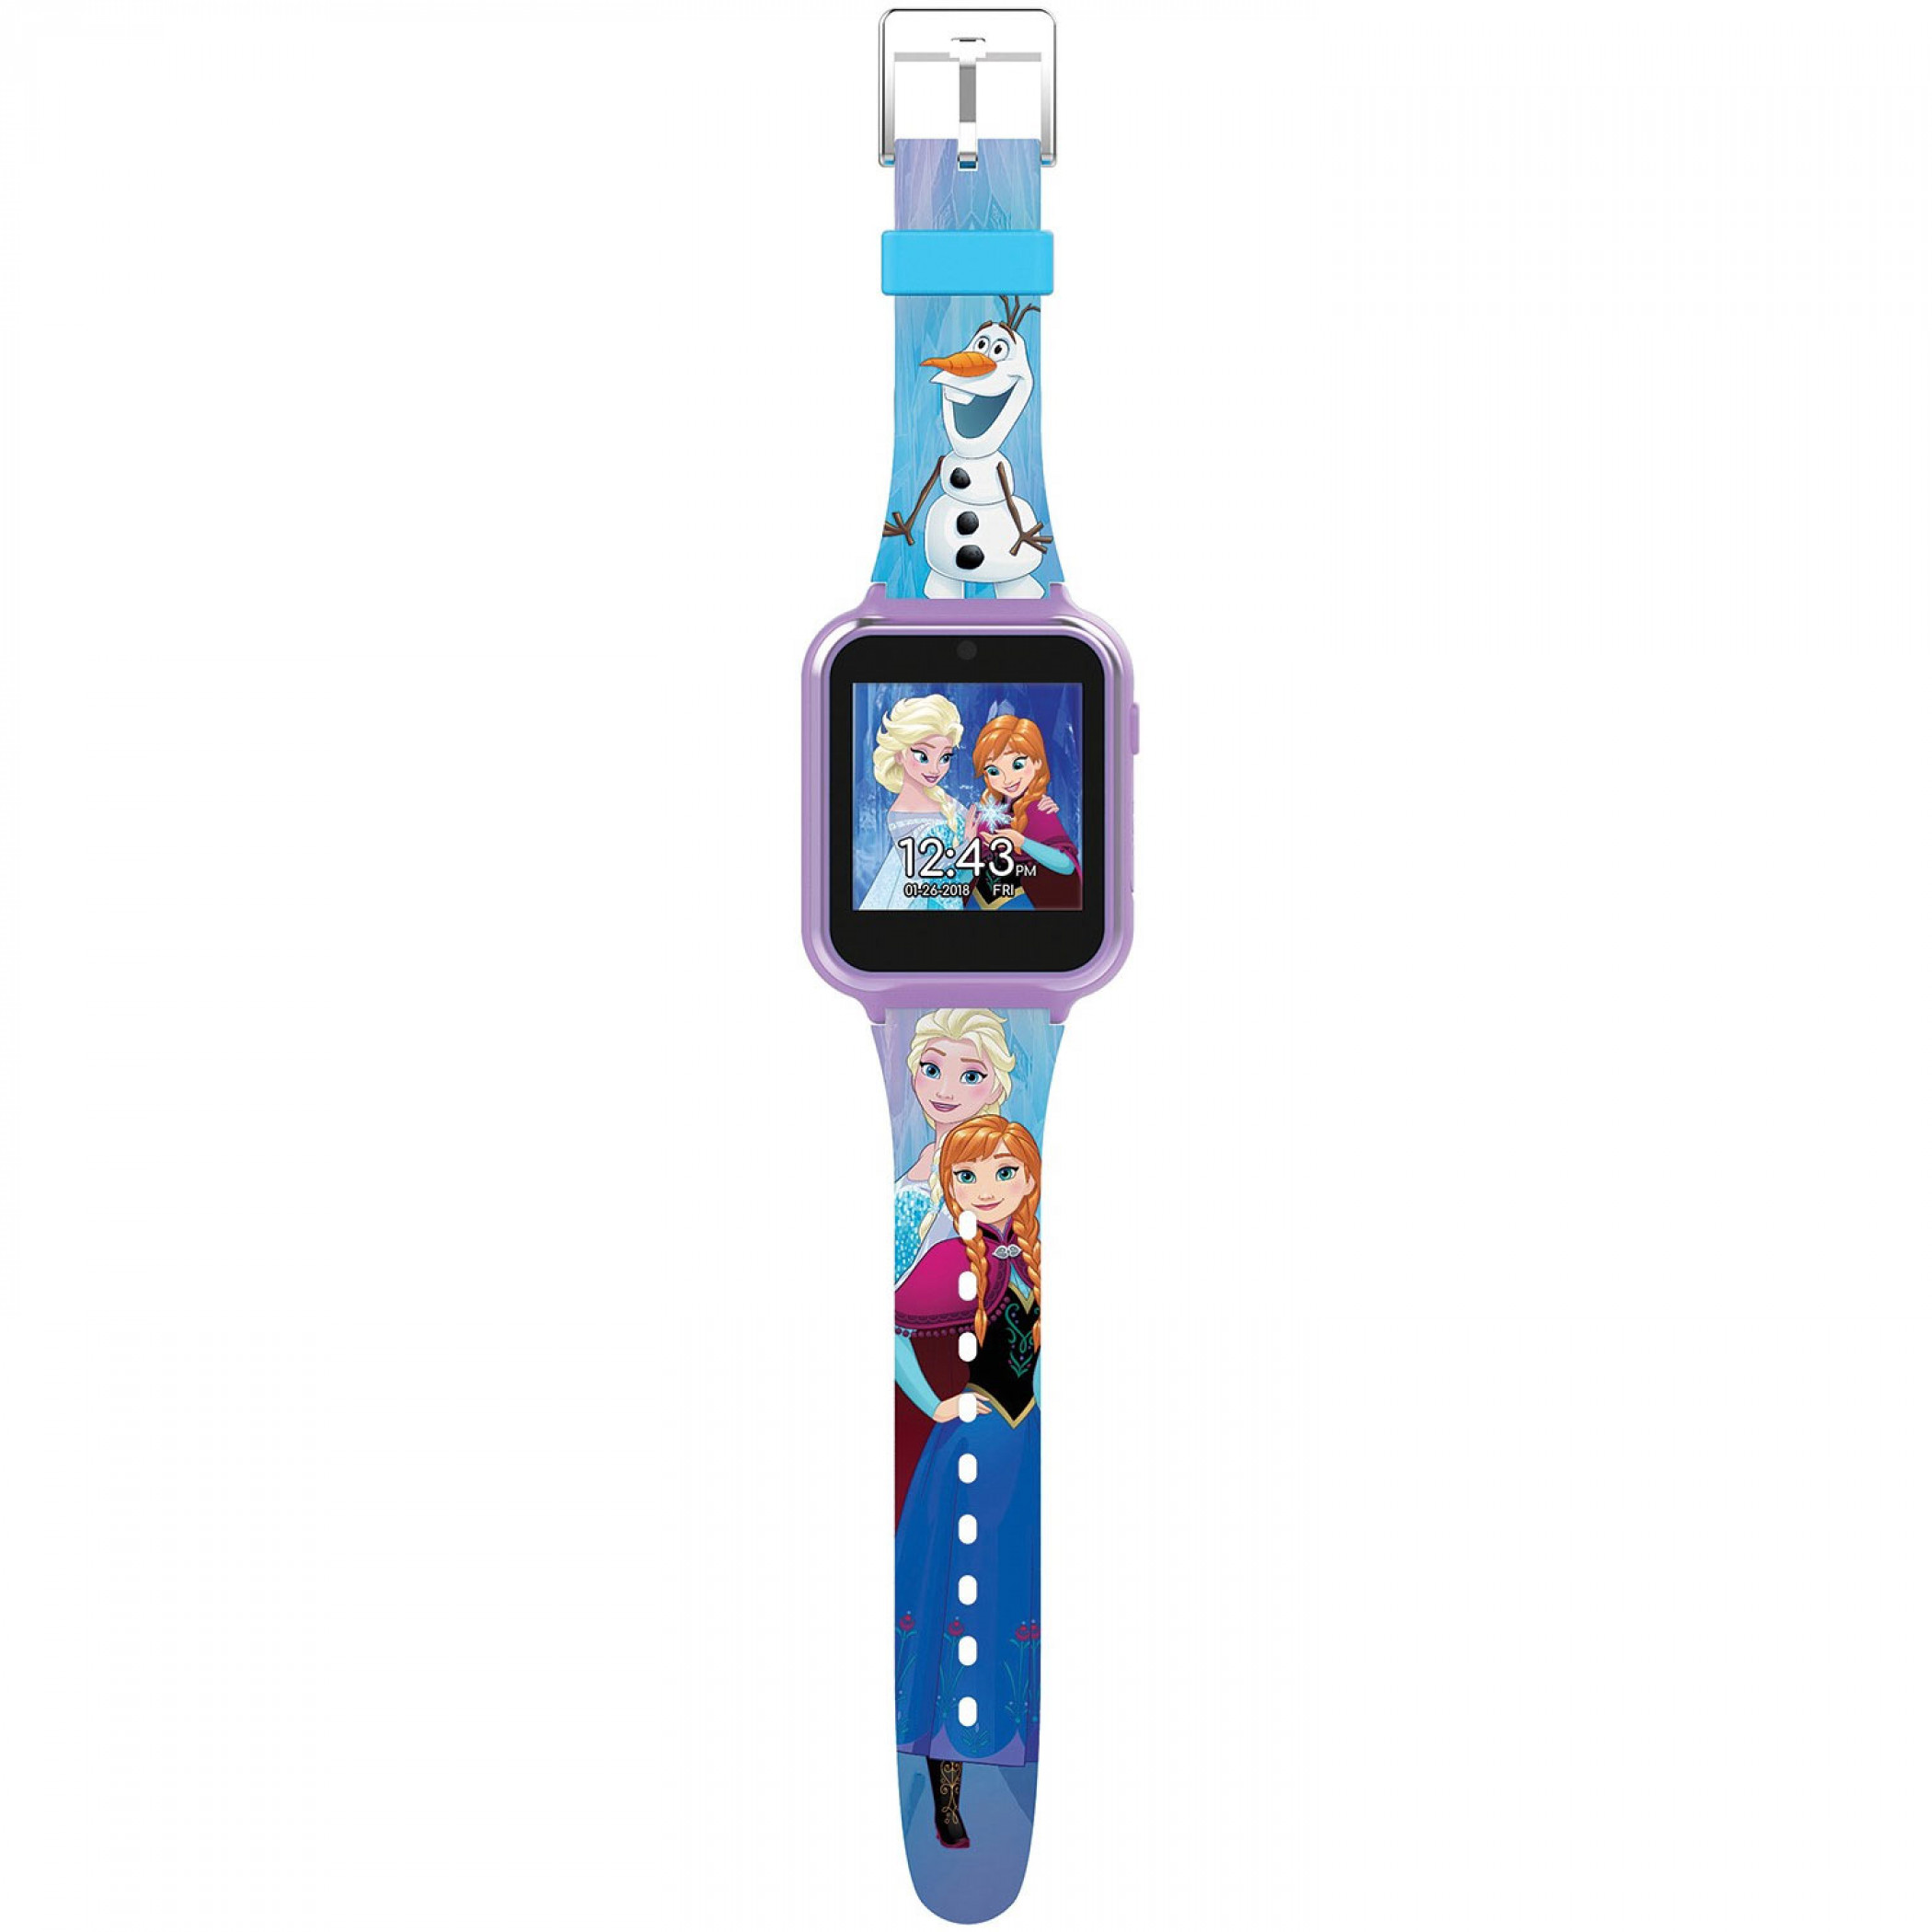 Frozen's Elsa and Anna Kids Interactive Watch